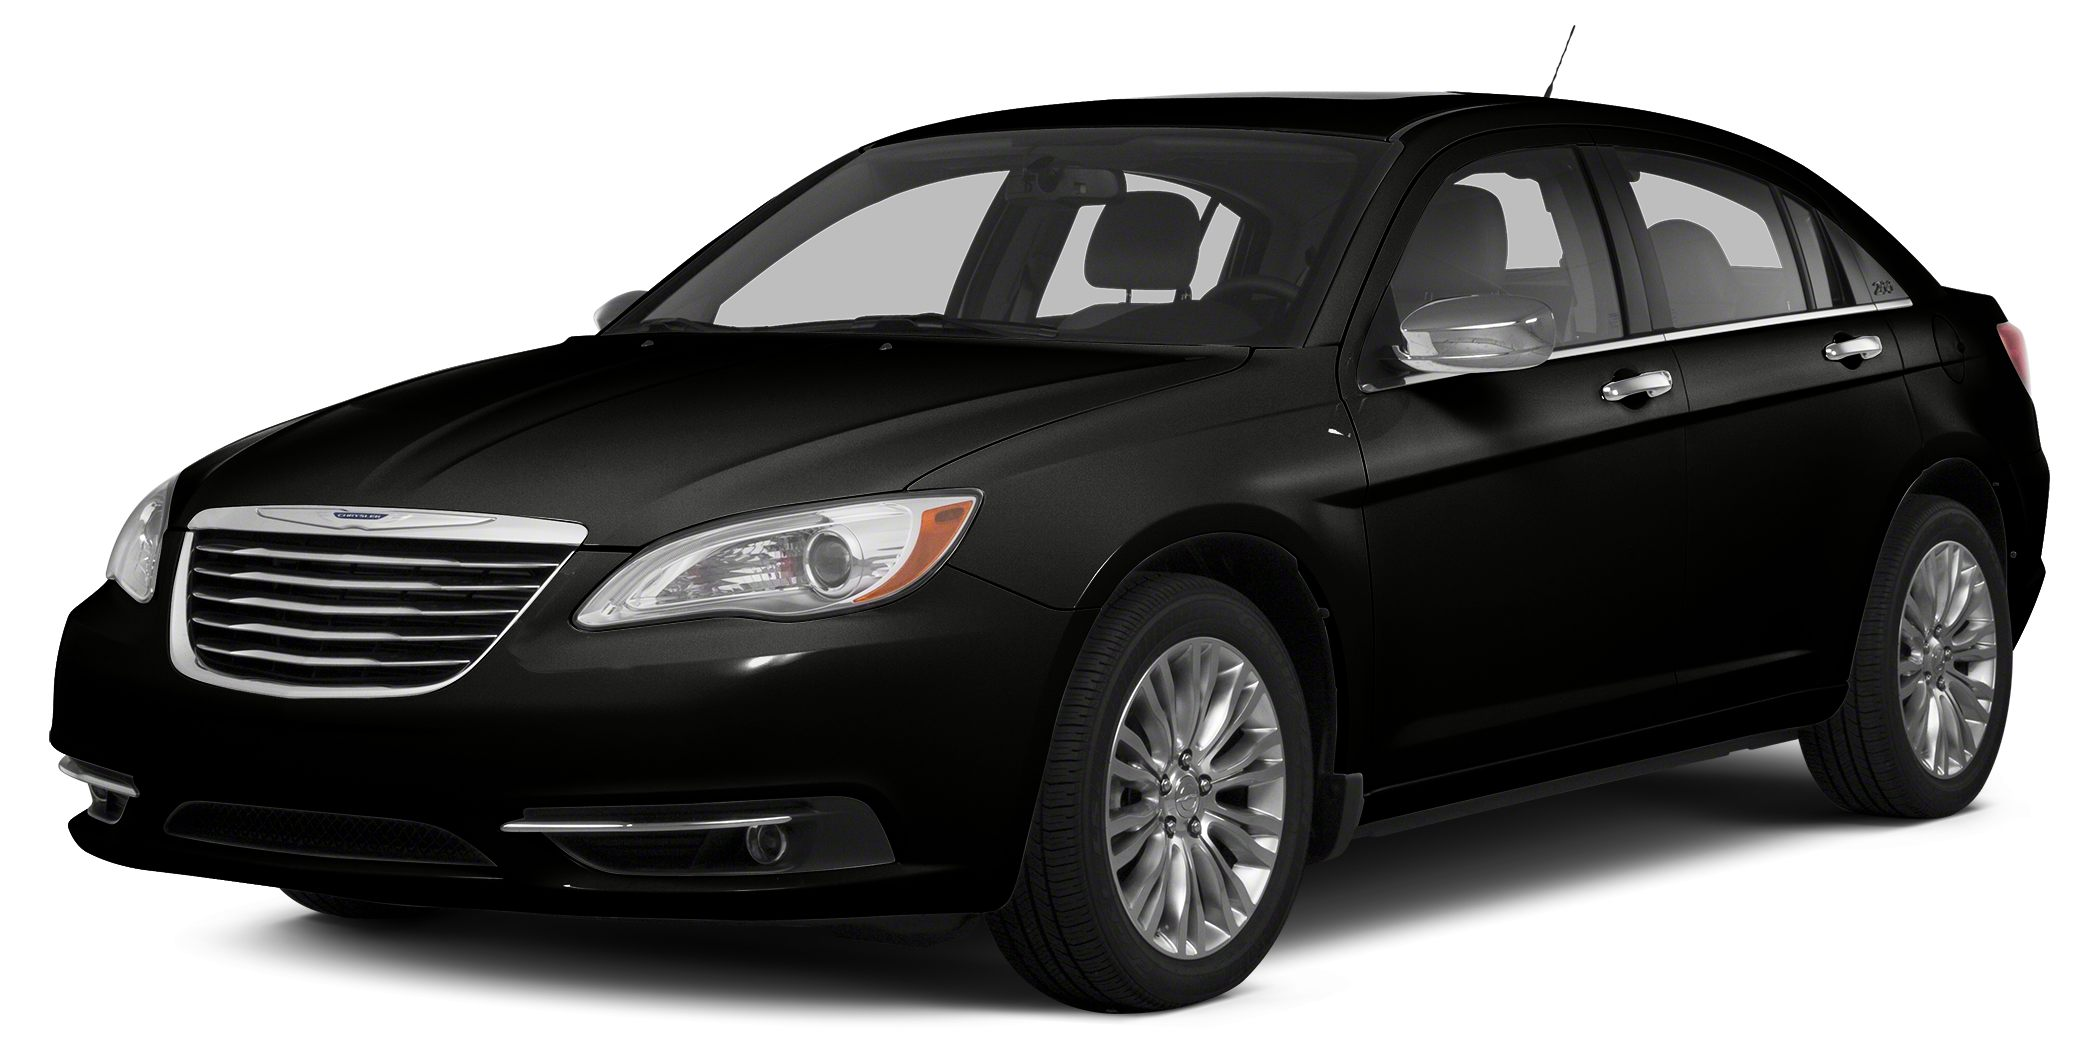 2014 Chrysler 200 LX CARFAX 1-Owner LX trim FUEL EFFICIENT 29 MPG Hwy19 MPG City iPodMP3 Inpu